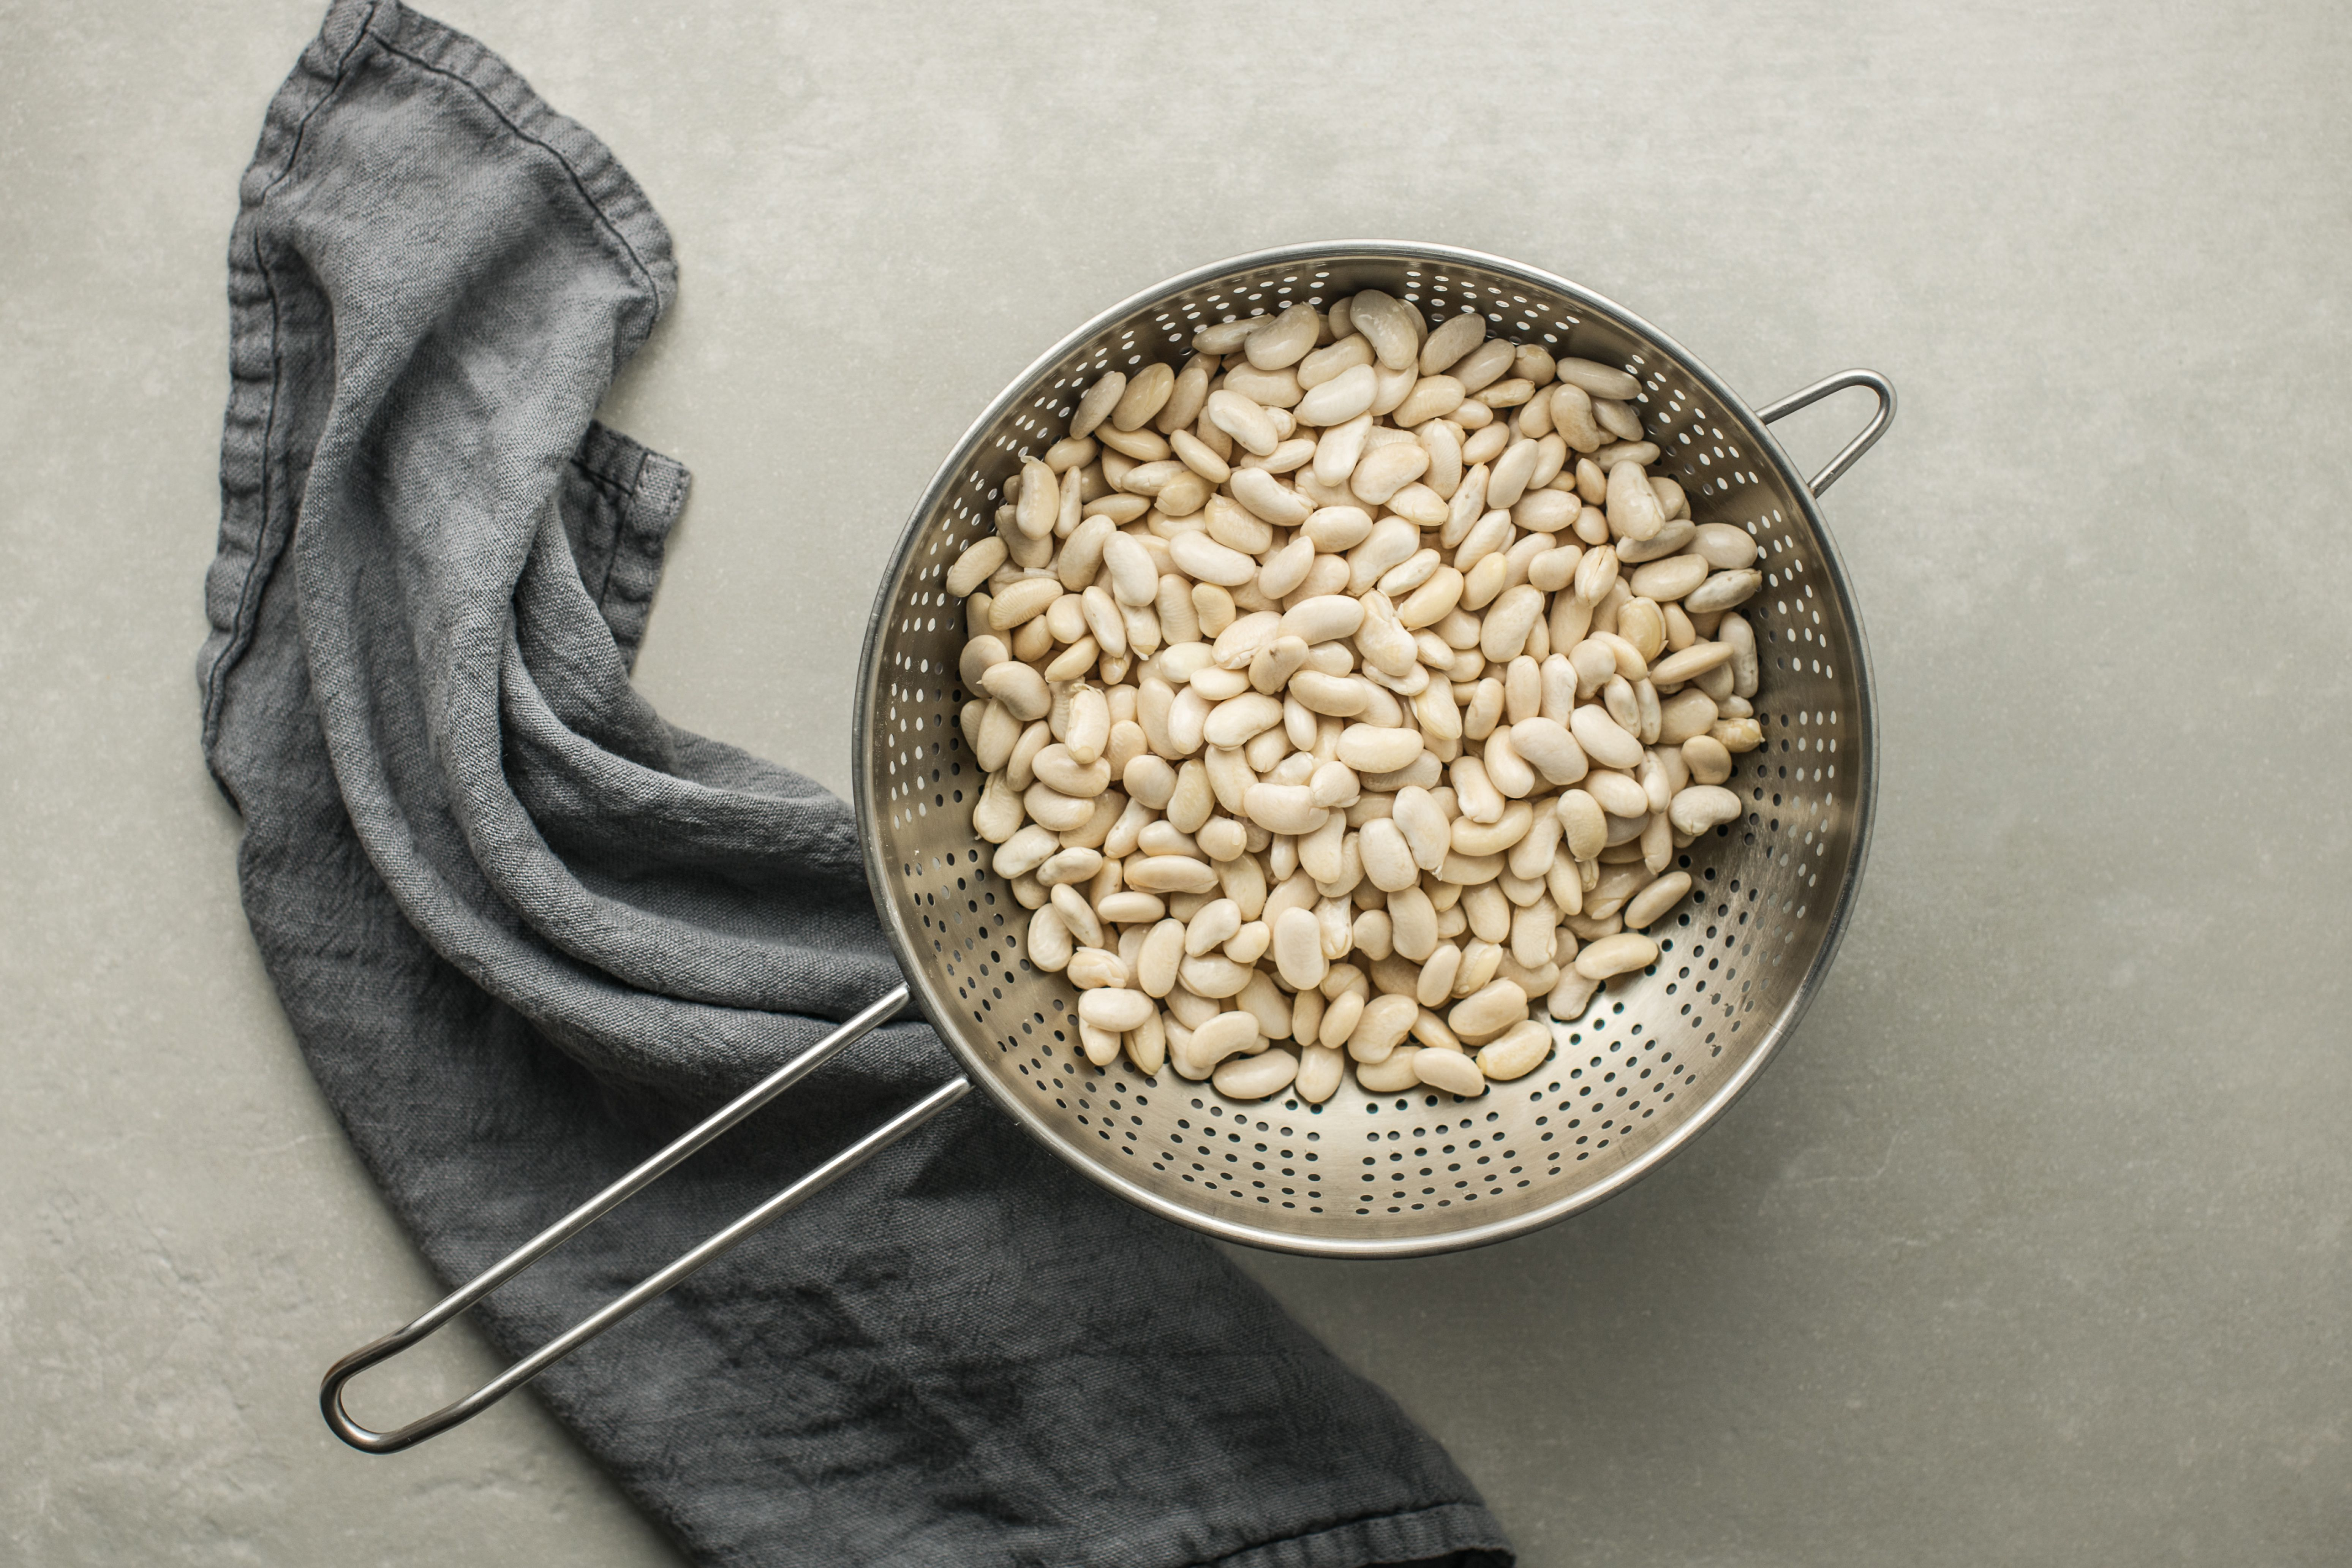 Soak the beans in water